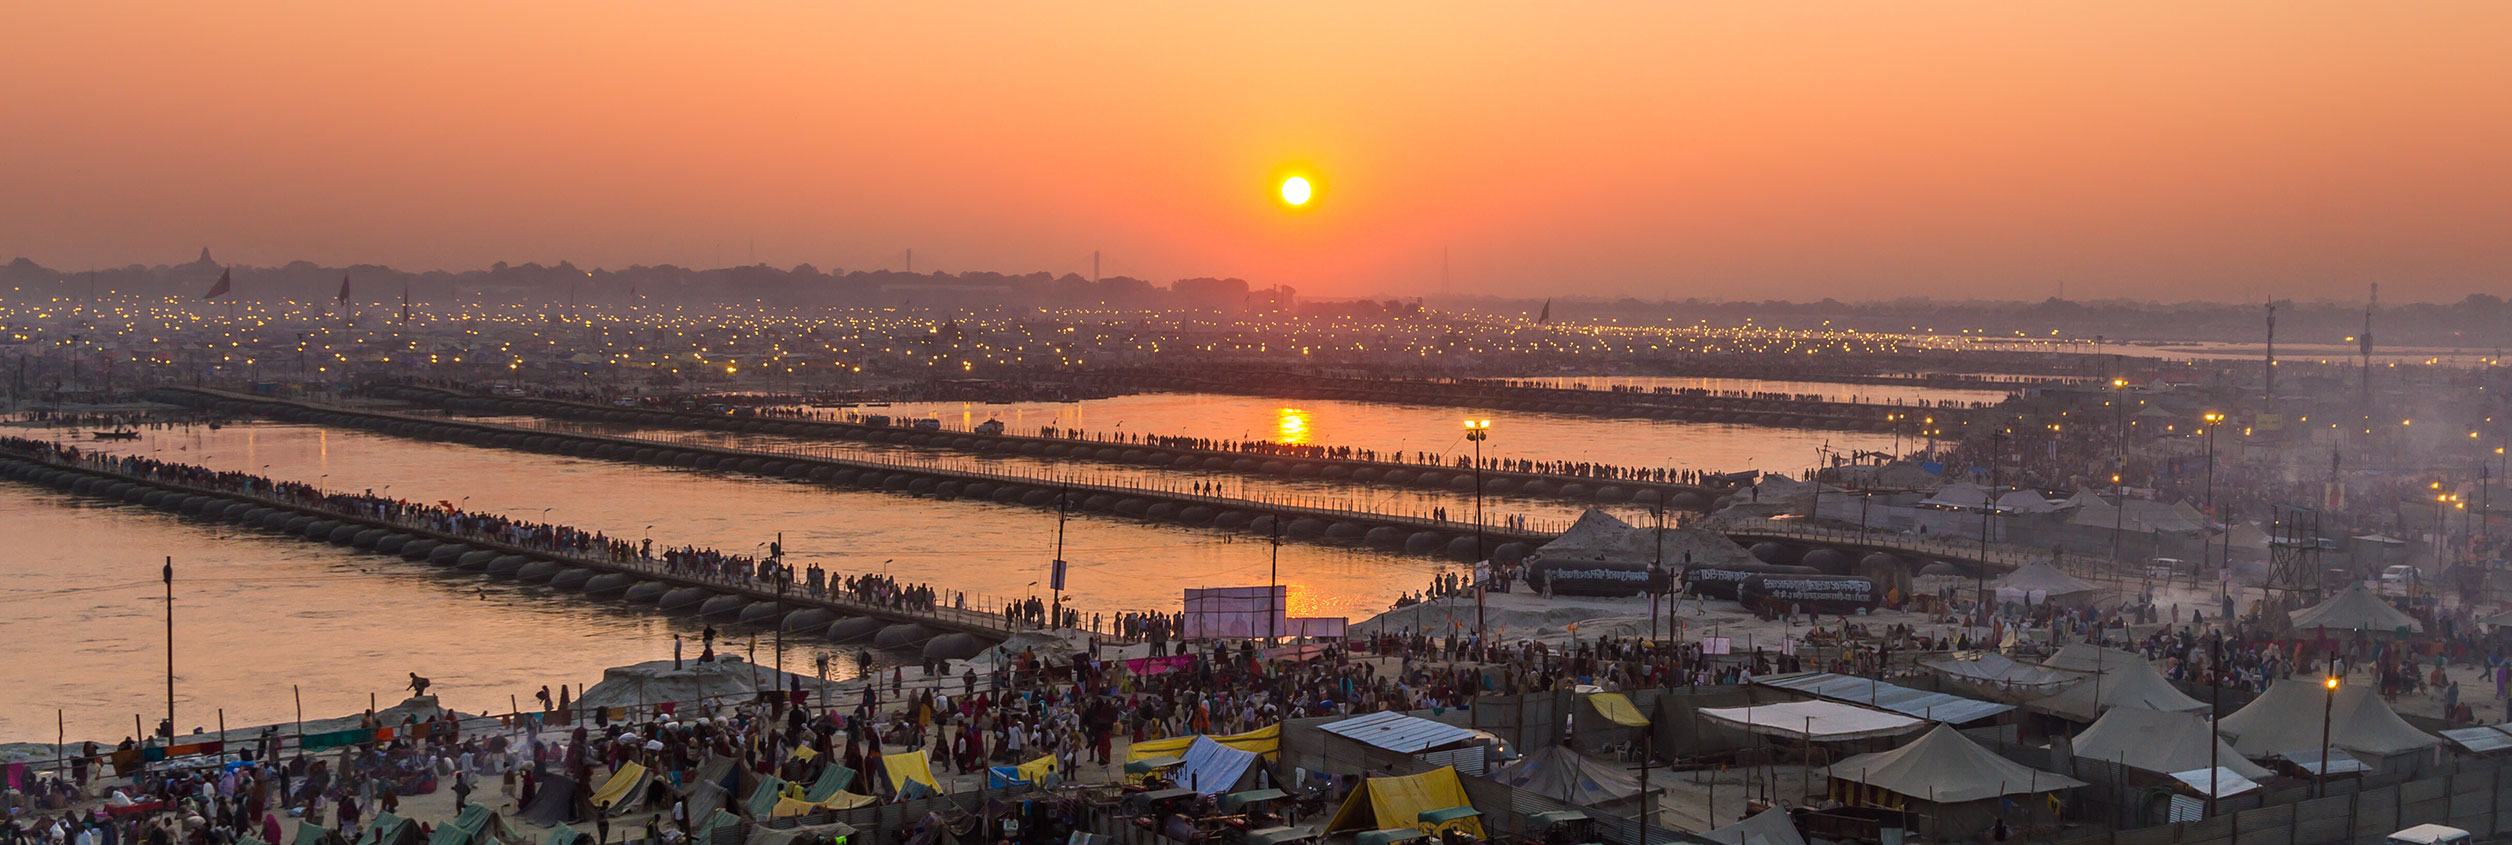 four fairs that are widely well-recognized as the kumbh mela